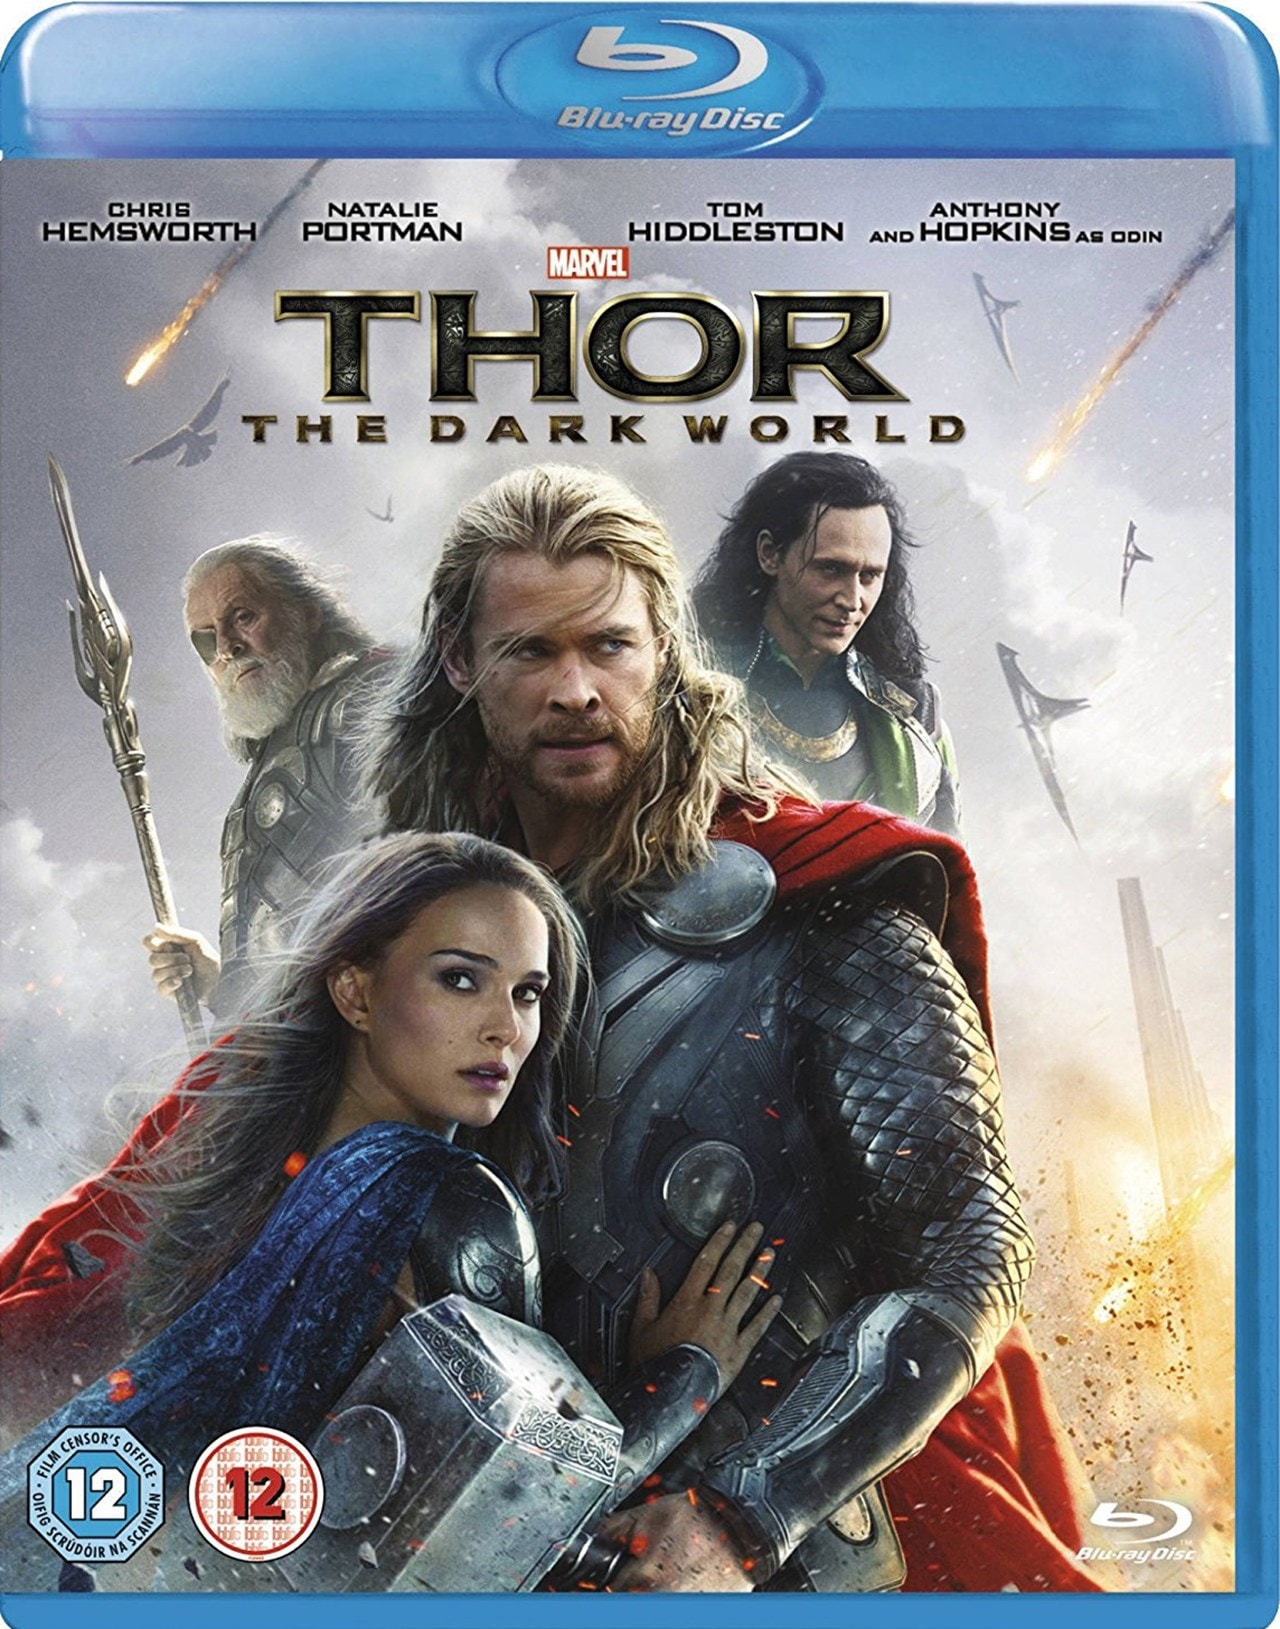 Thor: The Dark World - 3